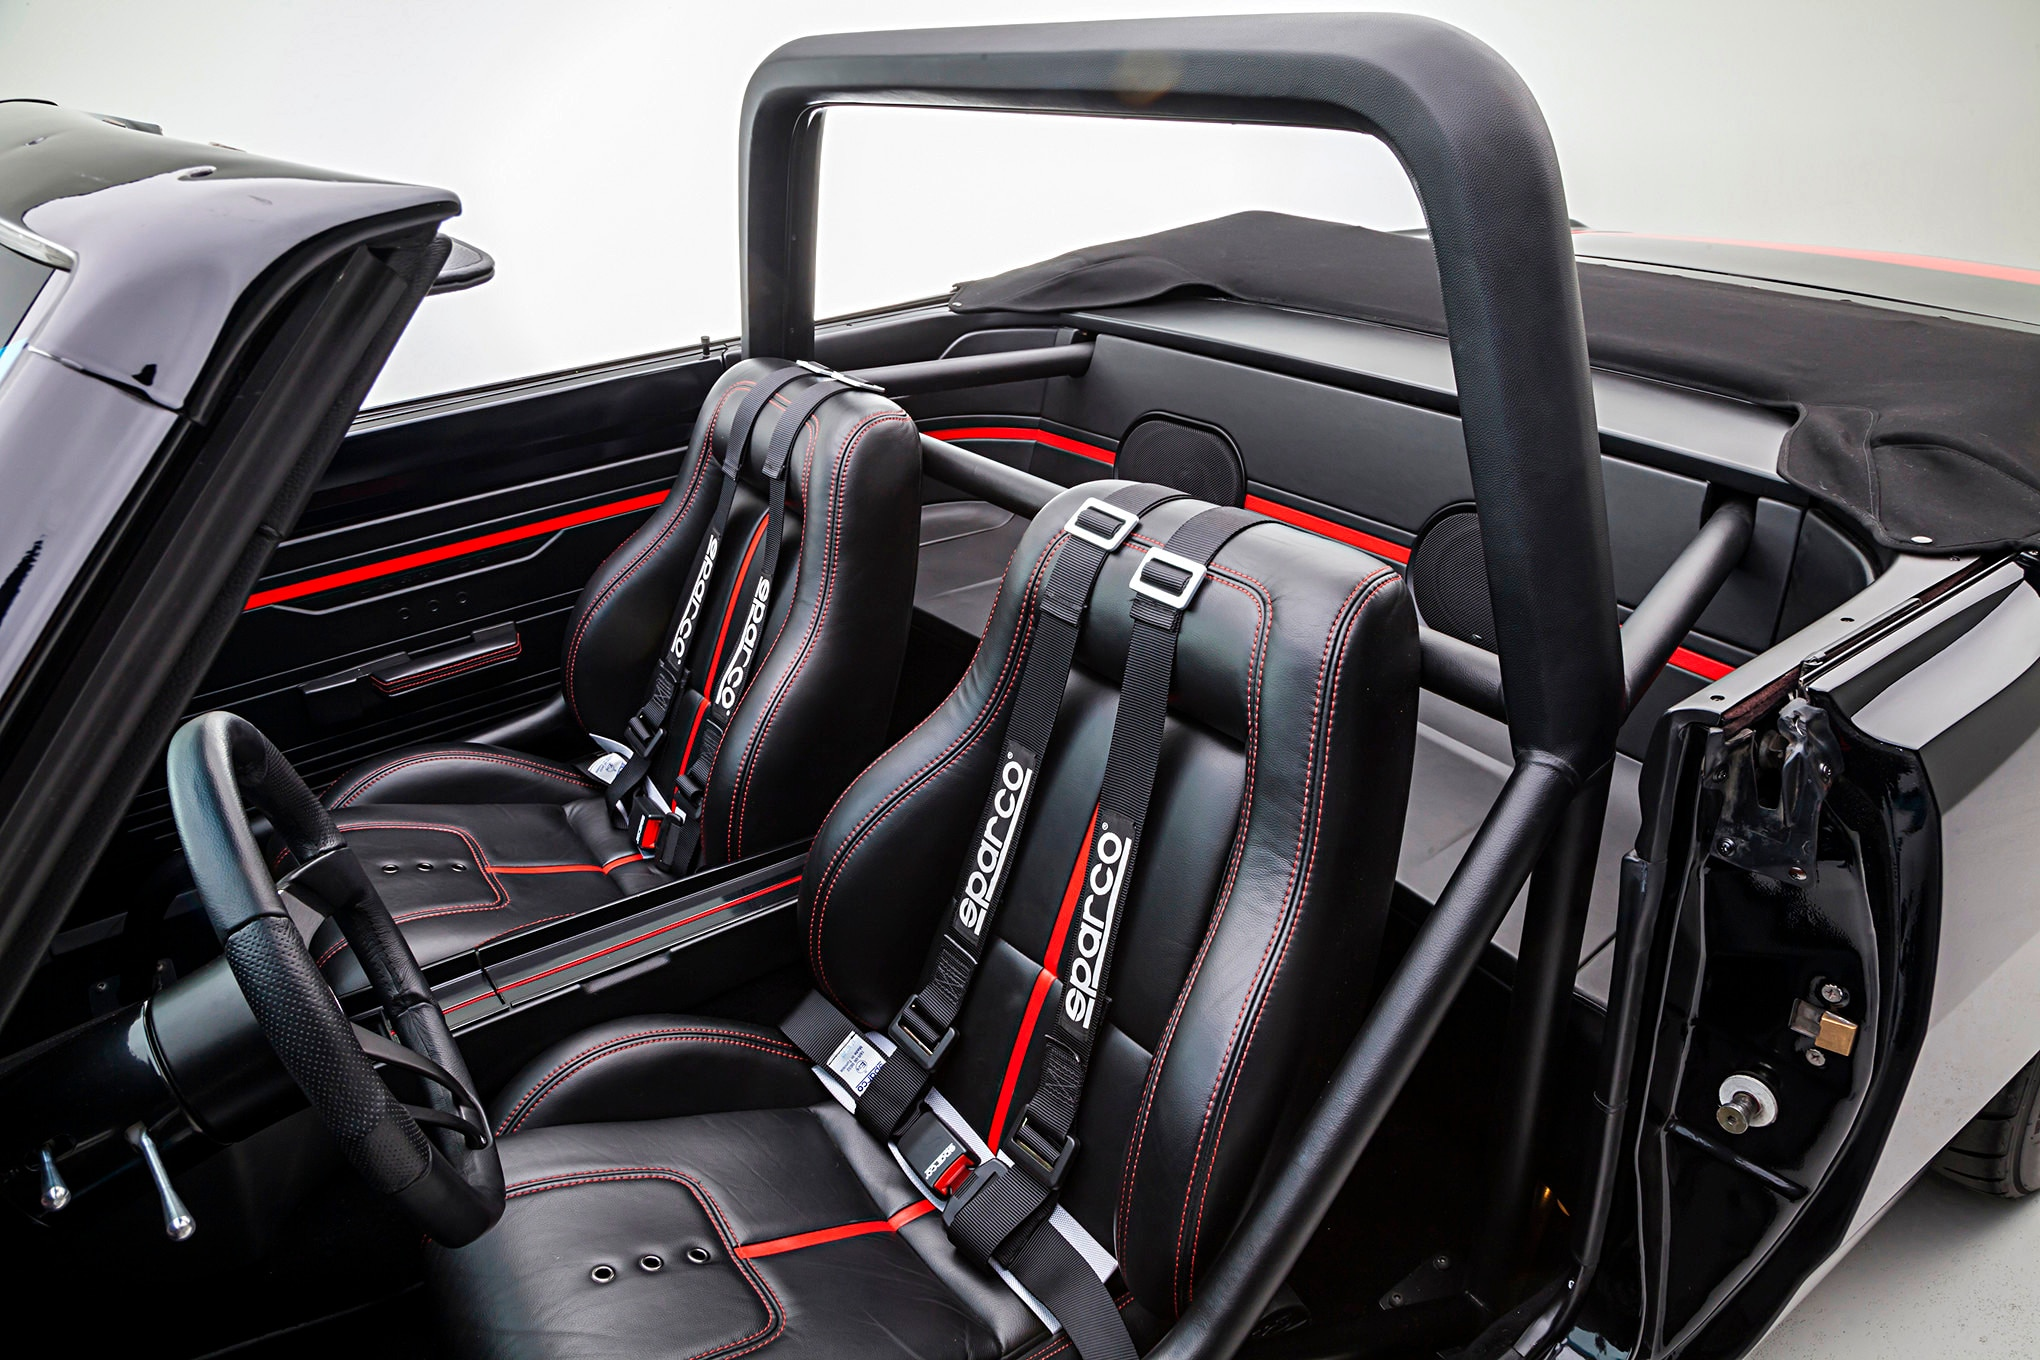 The rear seats are gone and the area is now taken up by part of the roll cage and speakers for the ARC Audio hi-fi system.